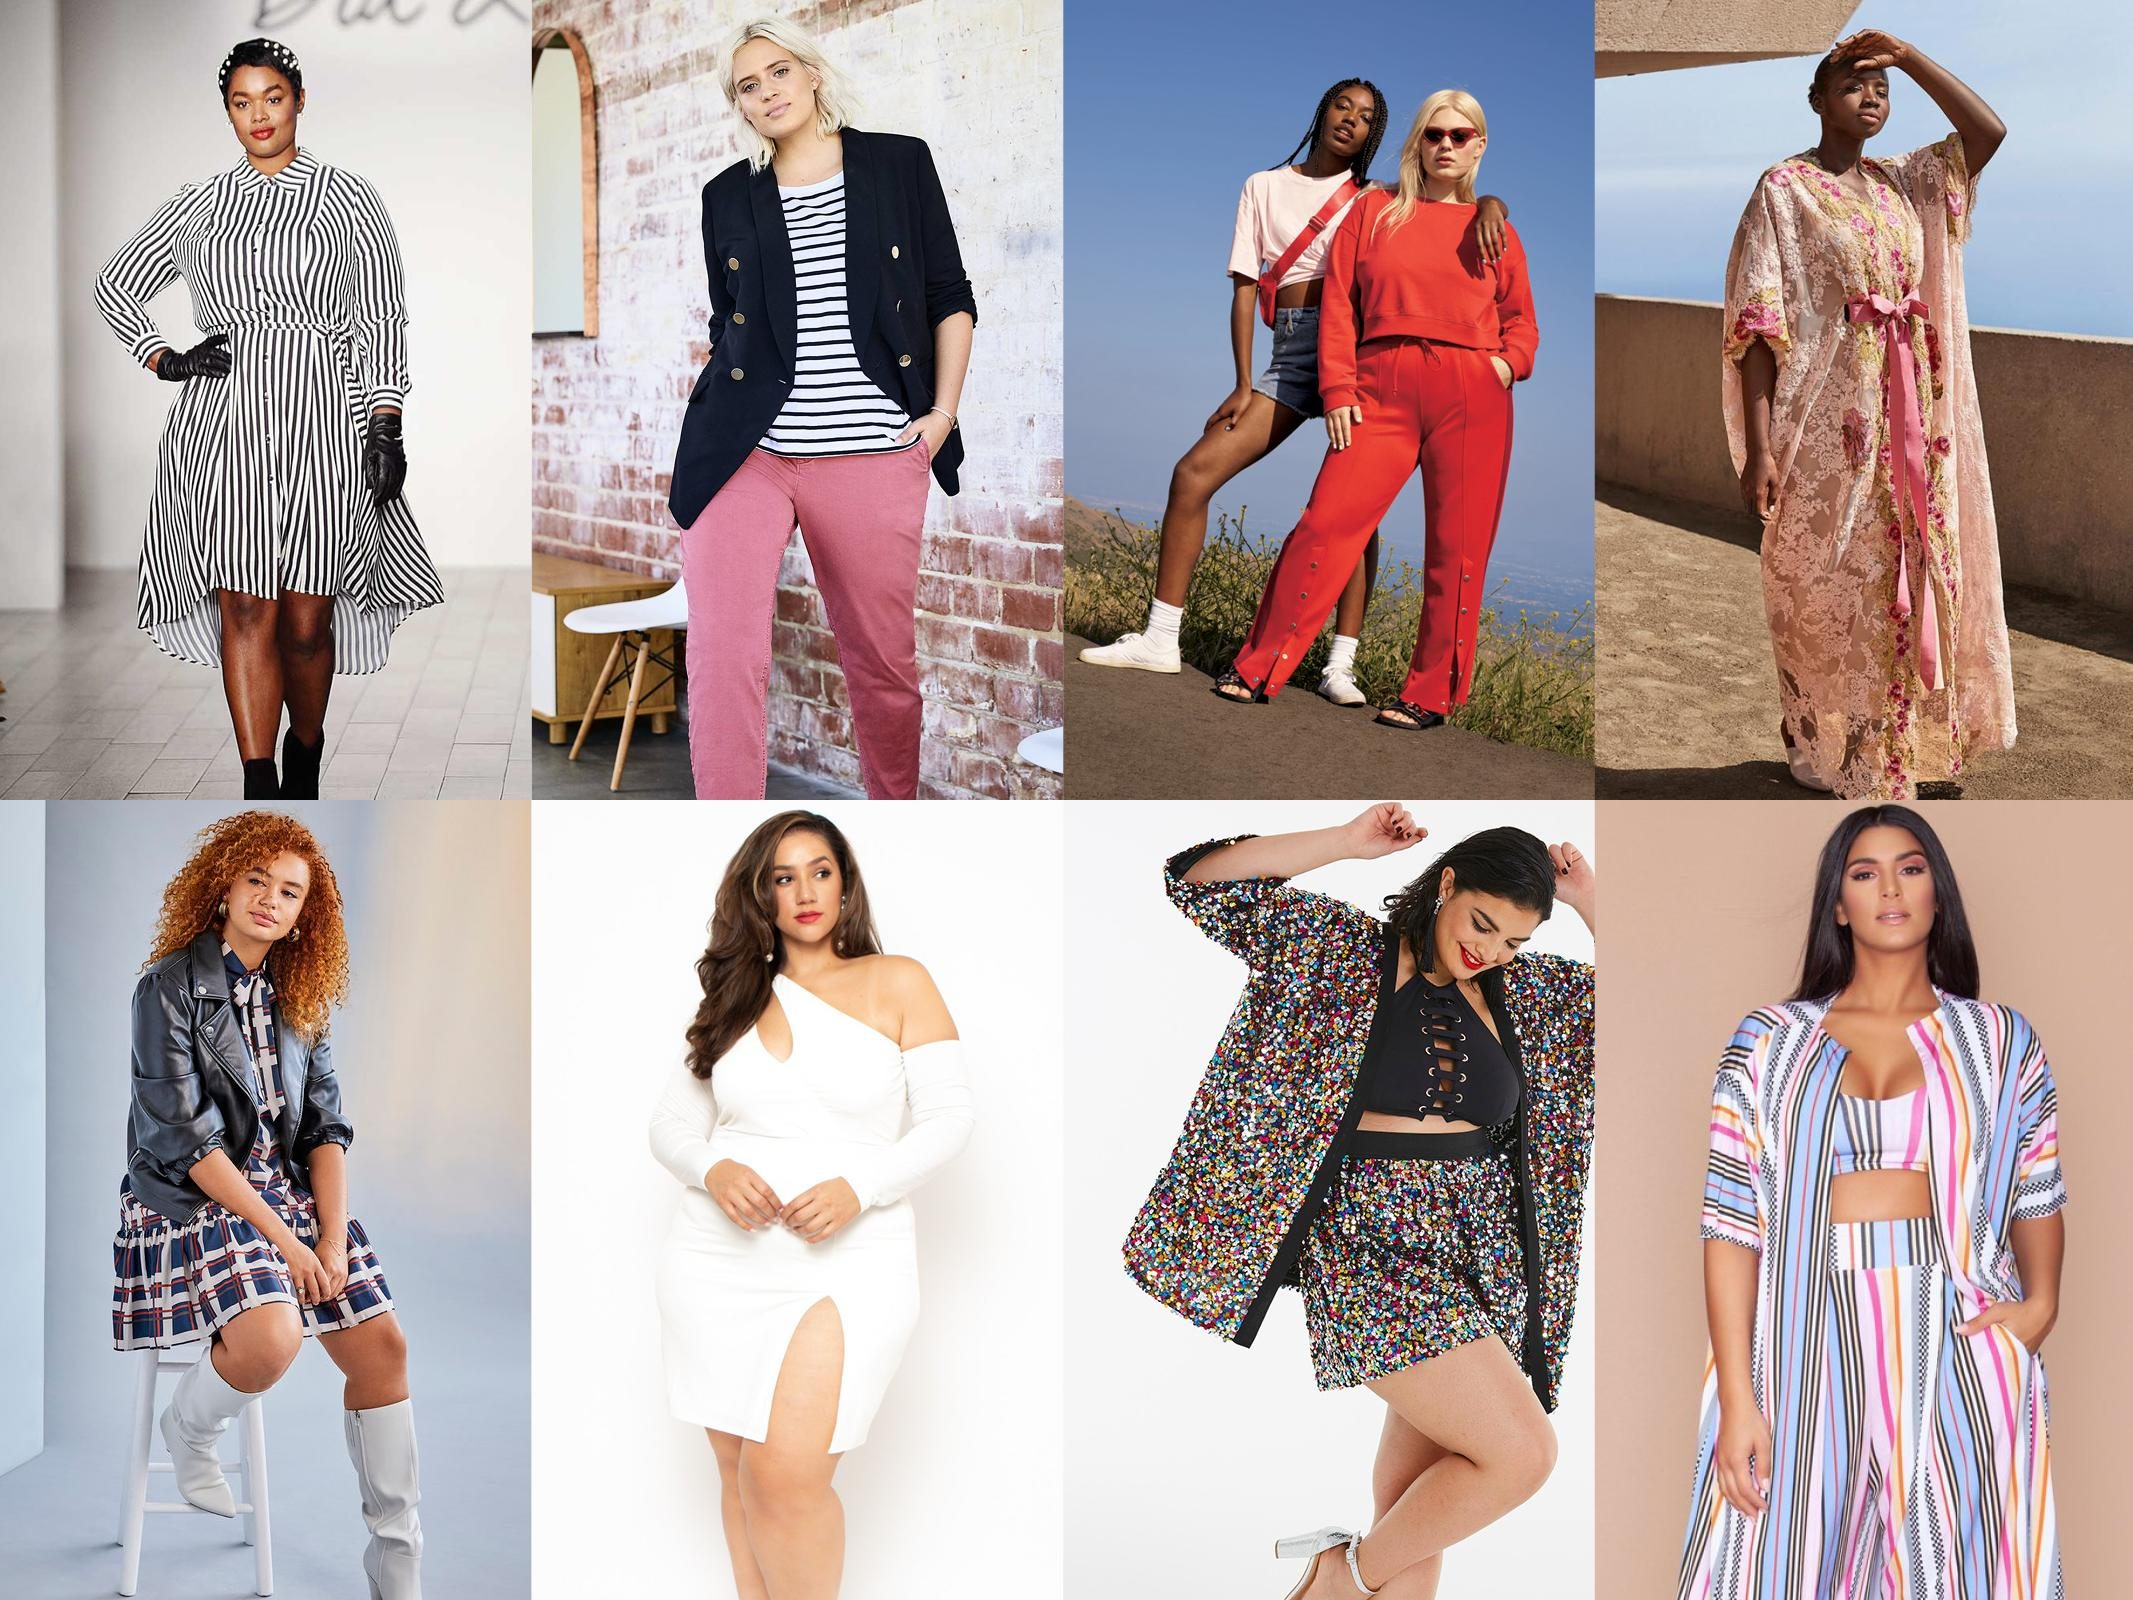 <p>The best retailers serving you the best plus-size fall fashion. (Photo: Dia & Co., Loft, Wild Fable, 11 Honoré, Eloquii, Curvy Sense, Simply Be, Rue 107) </p>